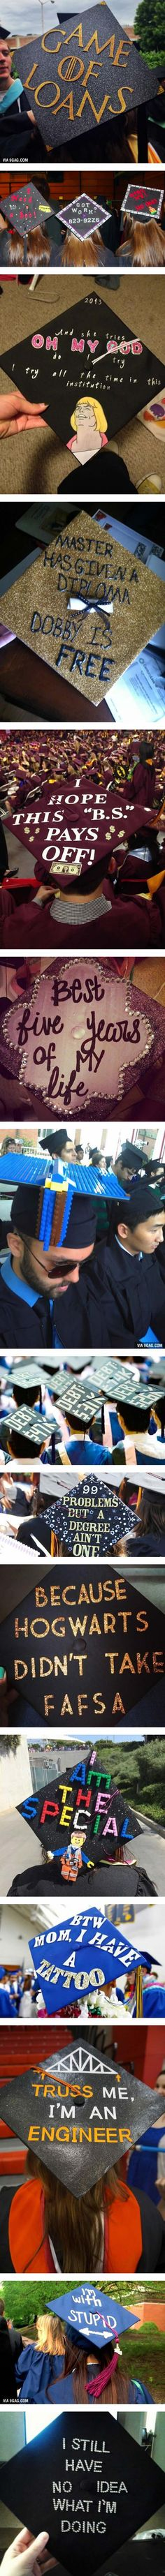 15 Hilarious Graduation Caps That Show Exactly The Status Of Students